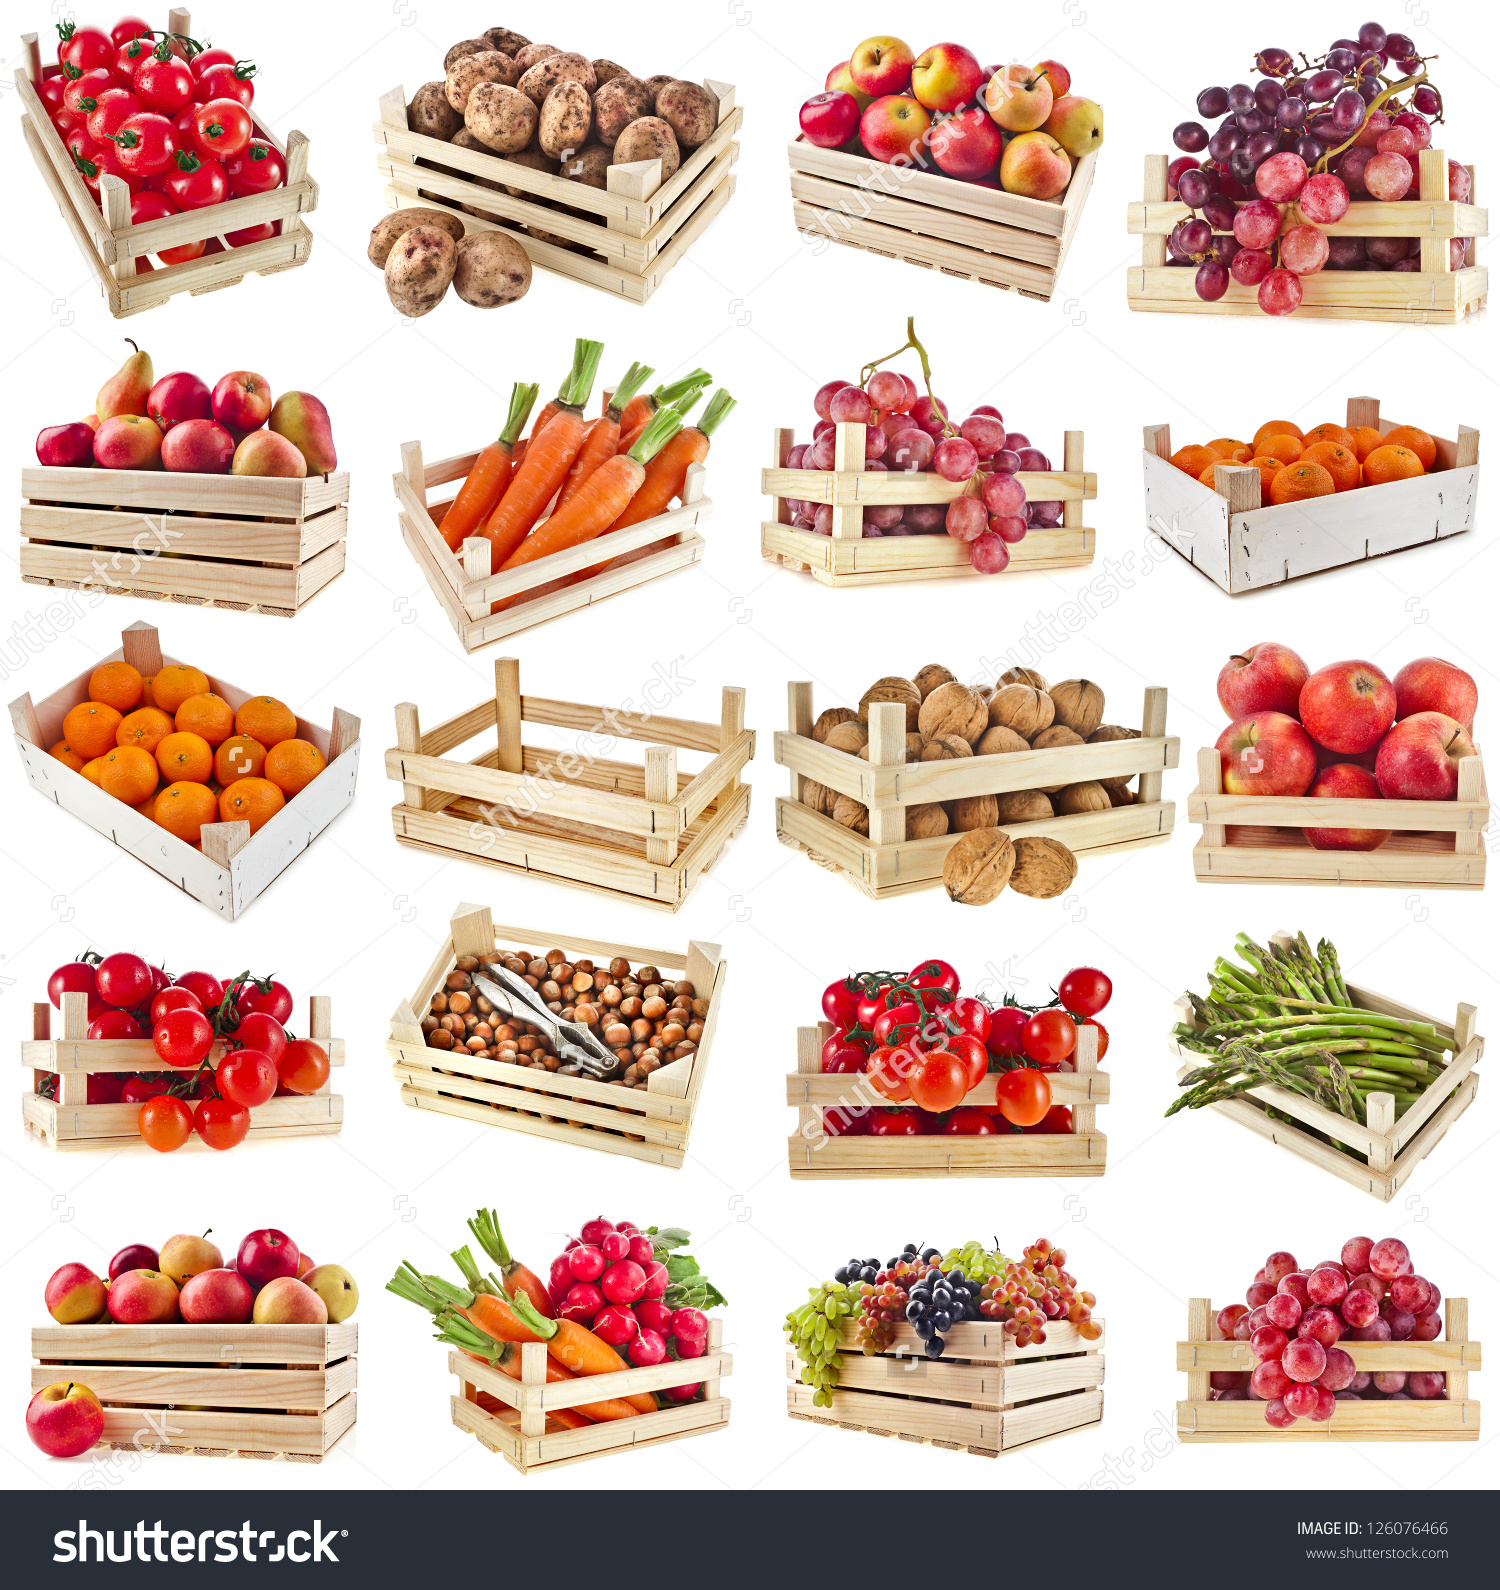 Fruit boxes clipground fresh. Berries clipart nuts